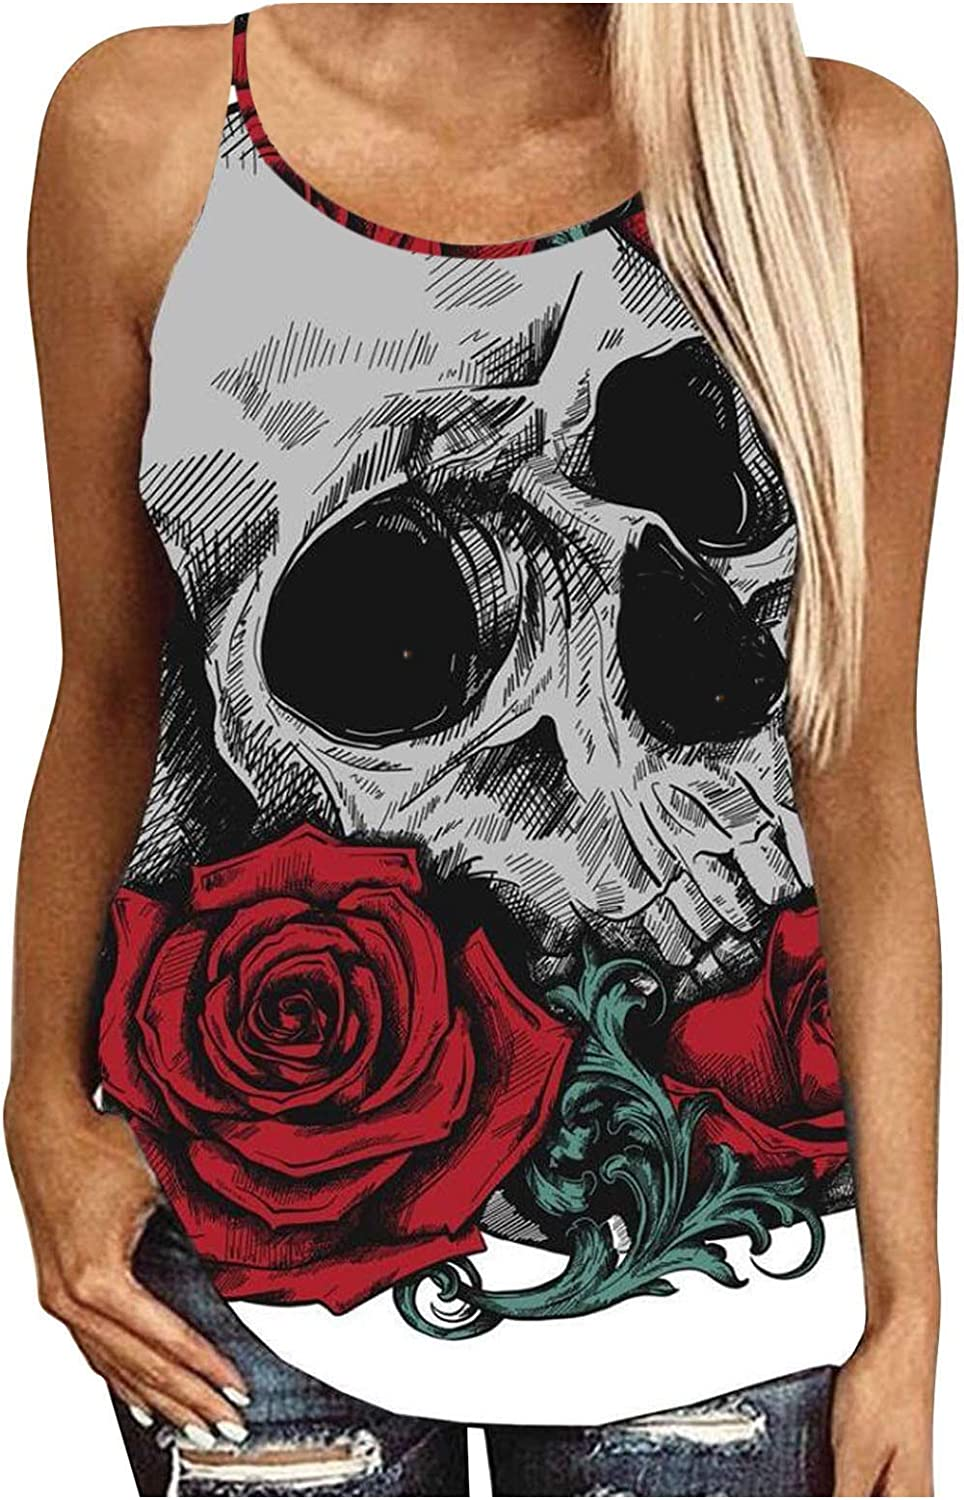 Backless Tank Tops for Women Selling rankings Halter Direct sale of manufacturer Casual Printed Loose Flower